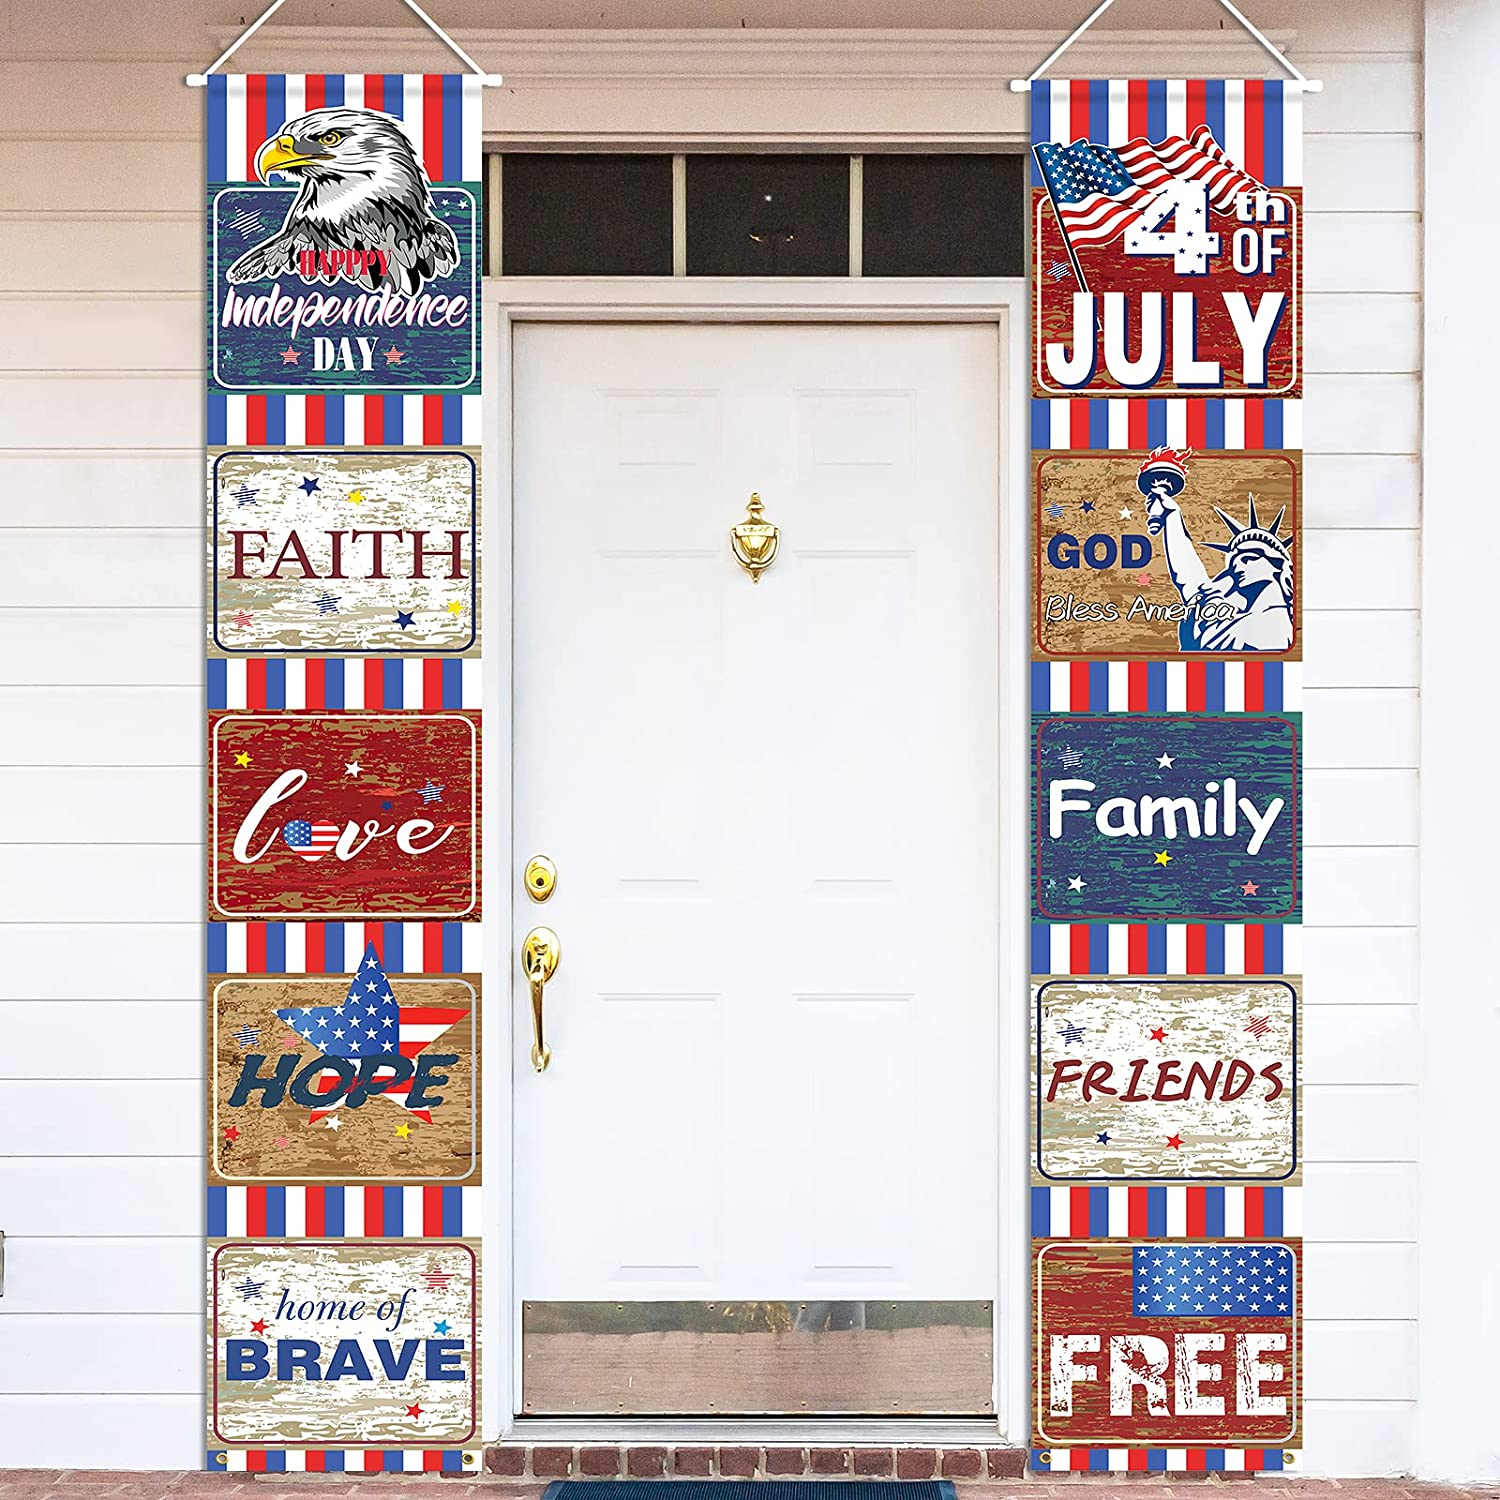 Fourth of July Decoration Patriotic Welcome Banner, 4th of July Banner for Independence Day/ Patriotic Party/ Veterans Day/ Memorial Day Decoration, Porch Banner for Indoor/ Outdoor/ Home/ Wall Decor